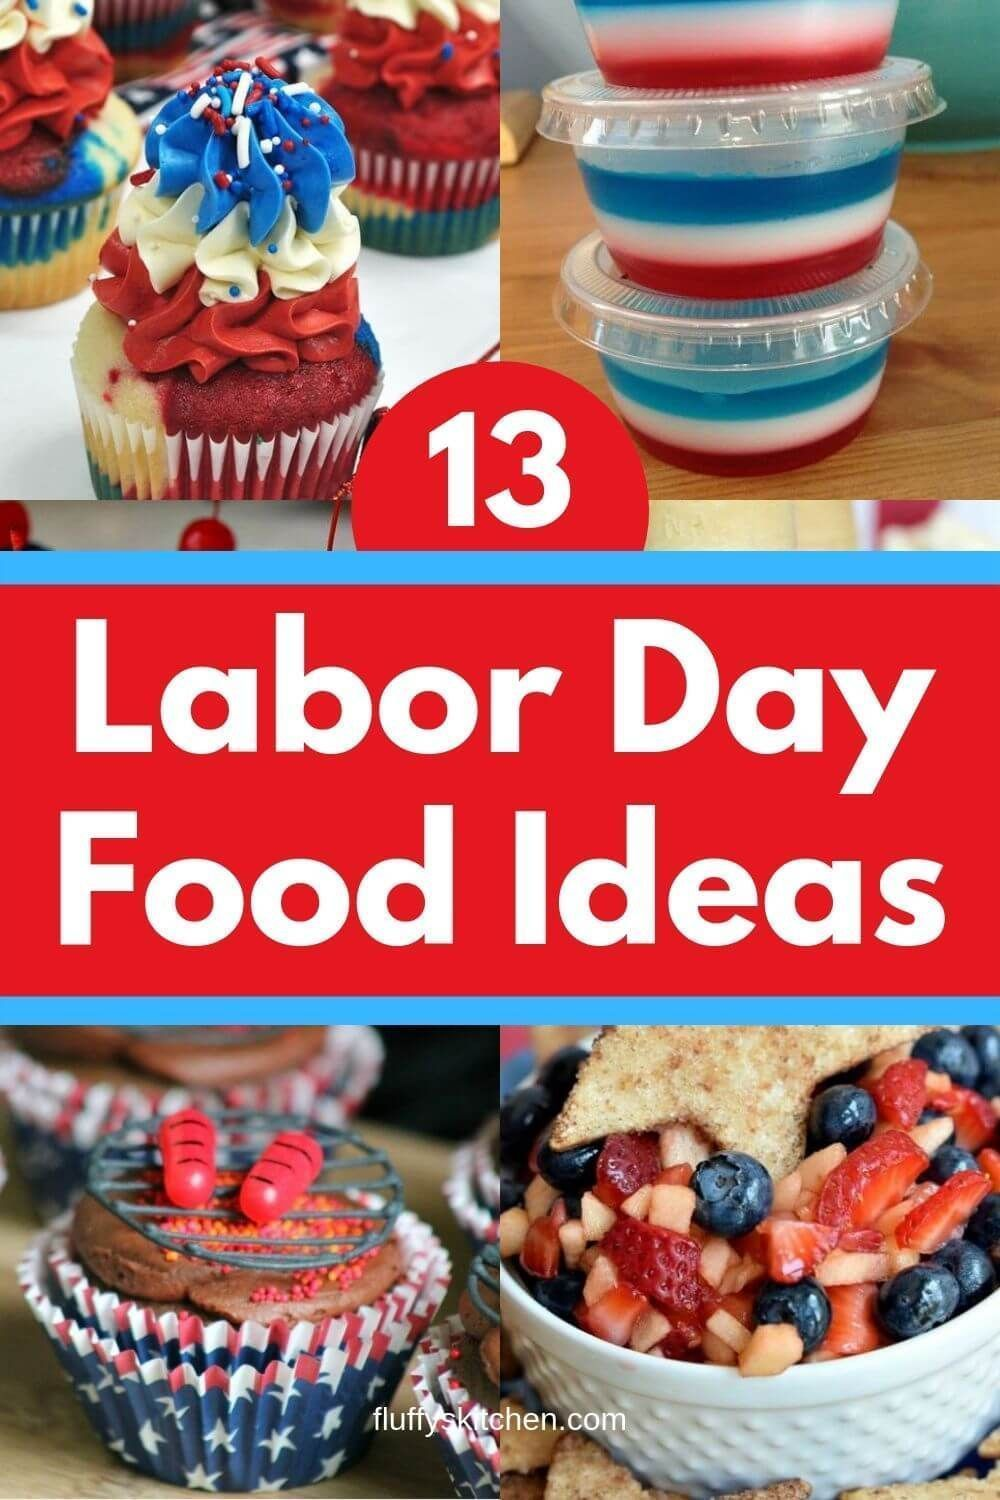 13 Labor Day Food Ideas #labordayfoodideas Here's 13 Labor Day Food Ideas I collected to send summer off with a bang. 13 Labor Day recipes guaranteed to make a splash at your Labor Day party! #labordayfoodideas #laborday #labordaybarbecue #labordayparty #labordayrecipes #labordayfoodideas 13 Labor Day Food Ideas #labordayfoodideas Here's 13 Labor Day Food Ideas I collected to send summer off with a bang. 13 Labor Day recipes guaranteed to make a splash at your Labor Day party! #labordayfoodideas #labordaydesserts